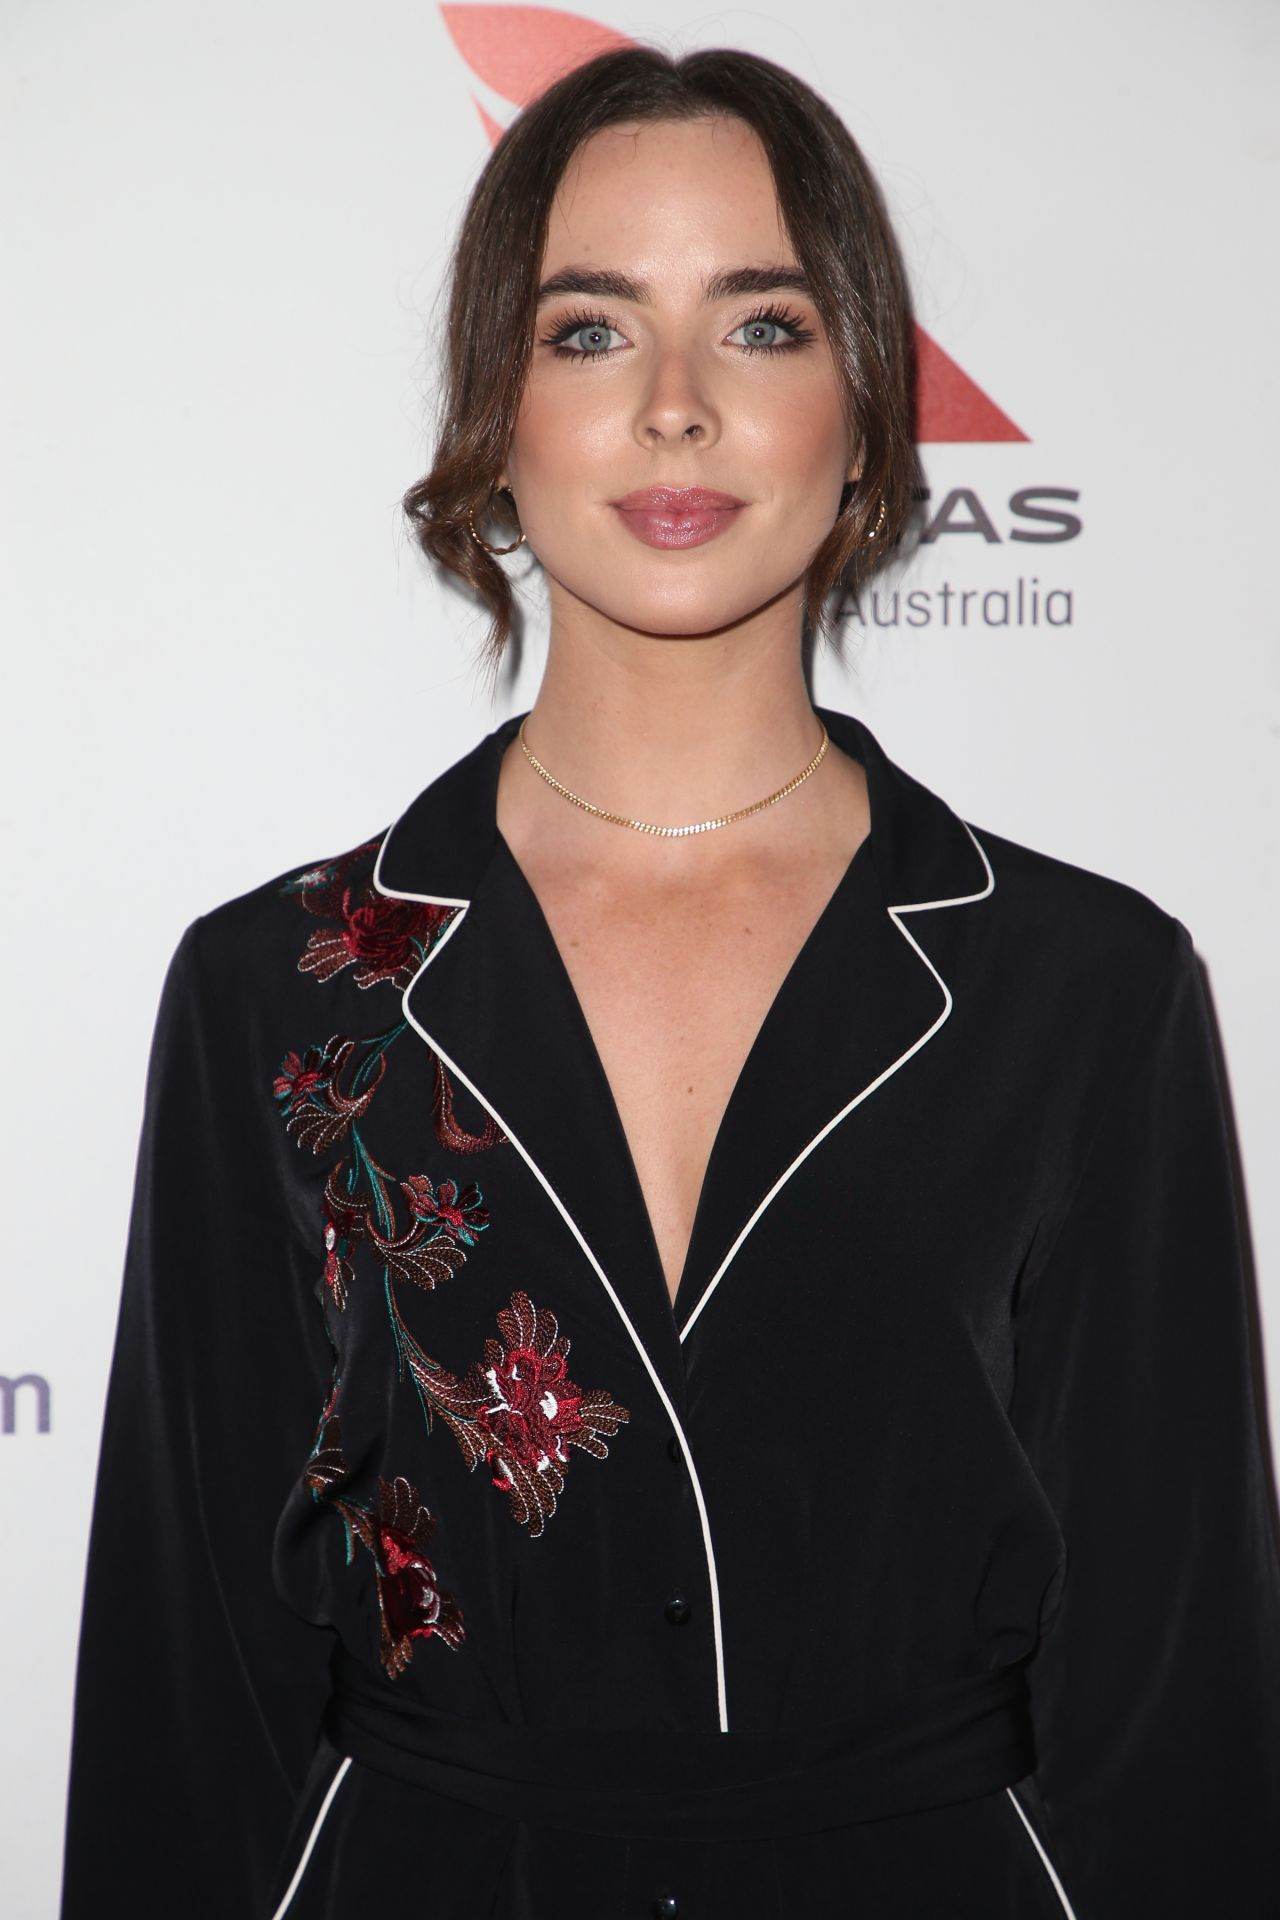 Ashleigh brewer australians in film awards benefit dinner in los angeles - 2019 year